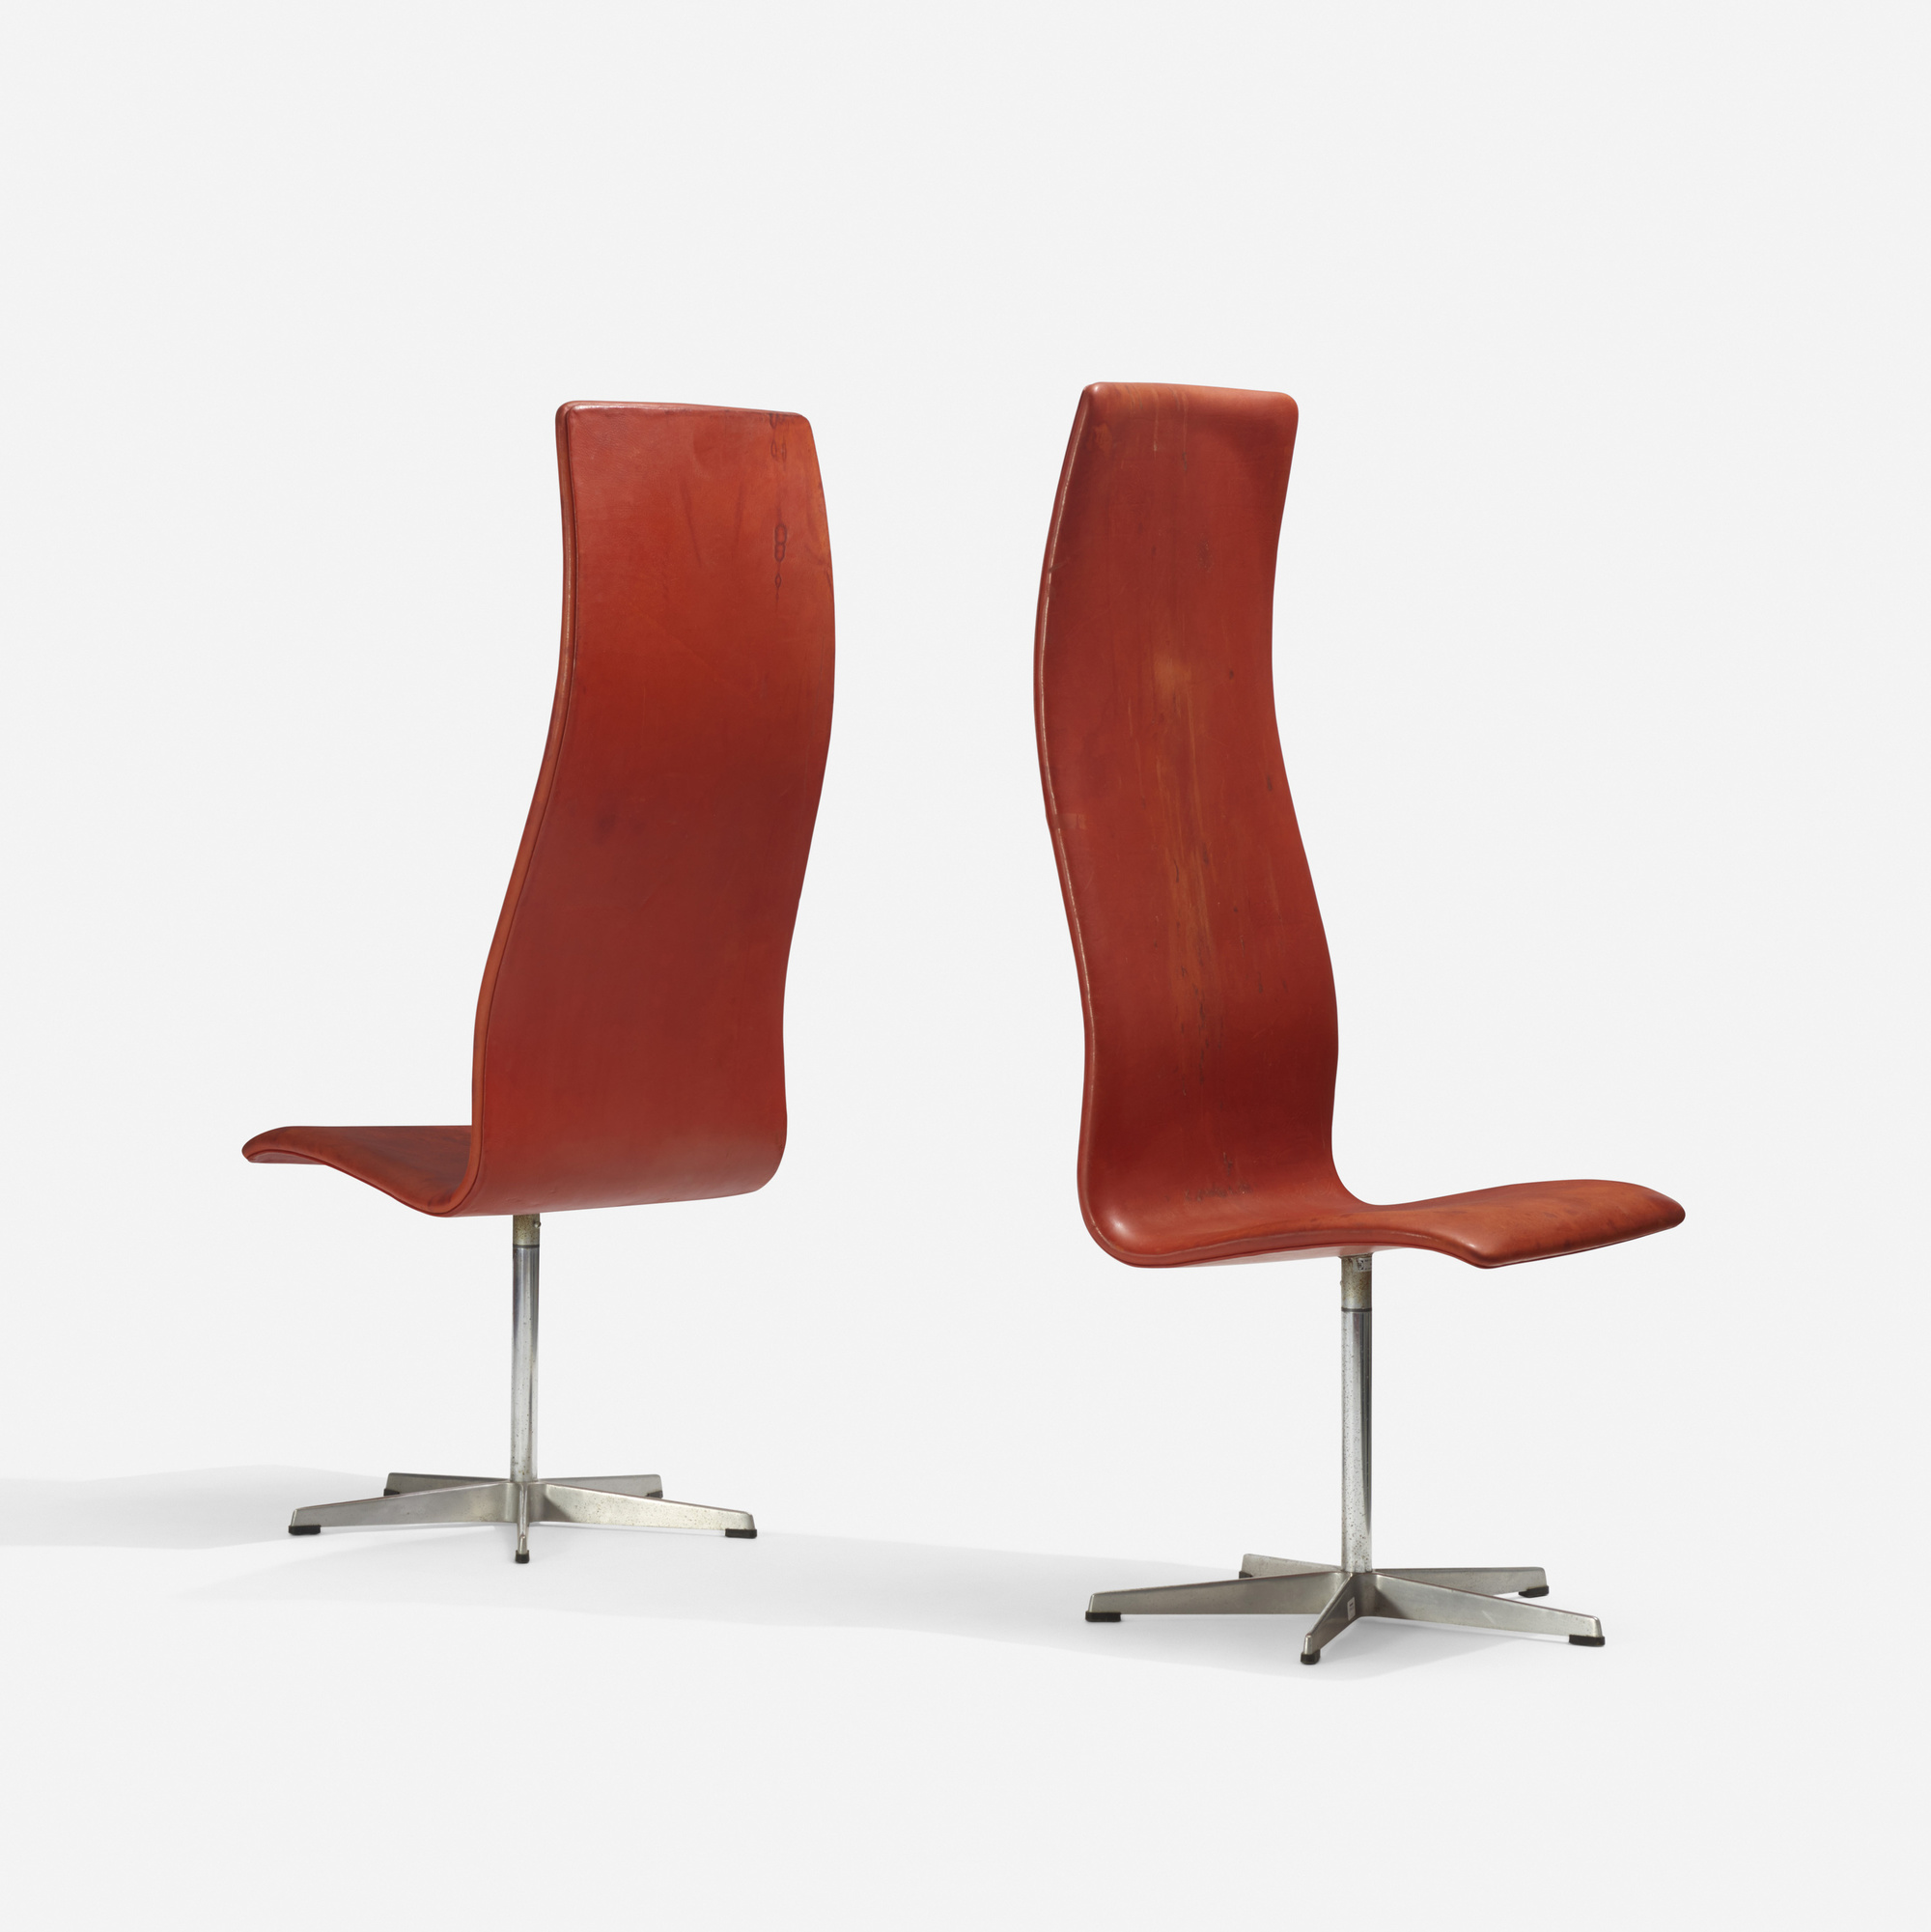 375: Arne Jacobsen / Oxford chairs model 7403, pair (1 of 1)